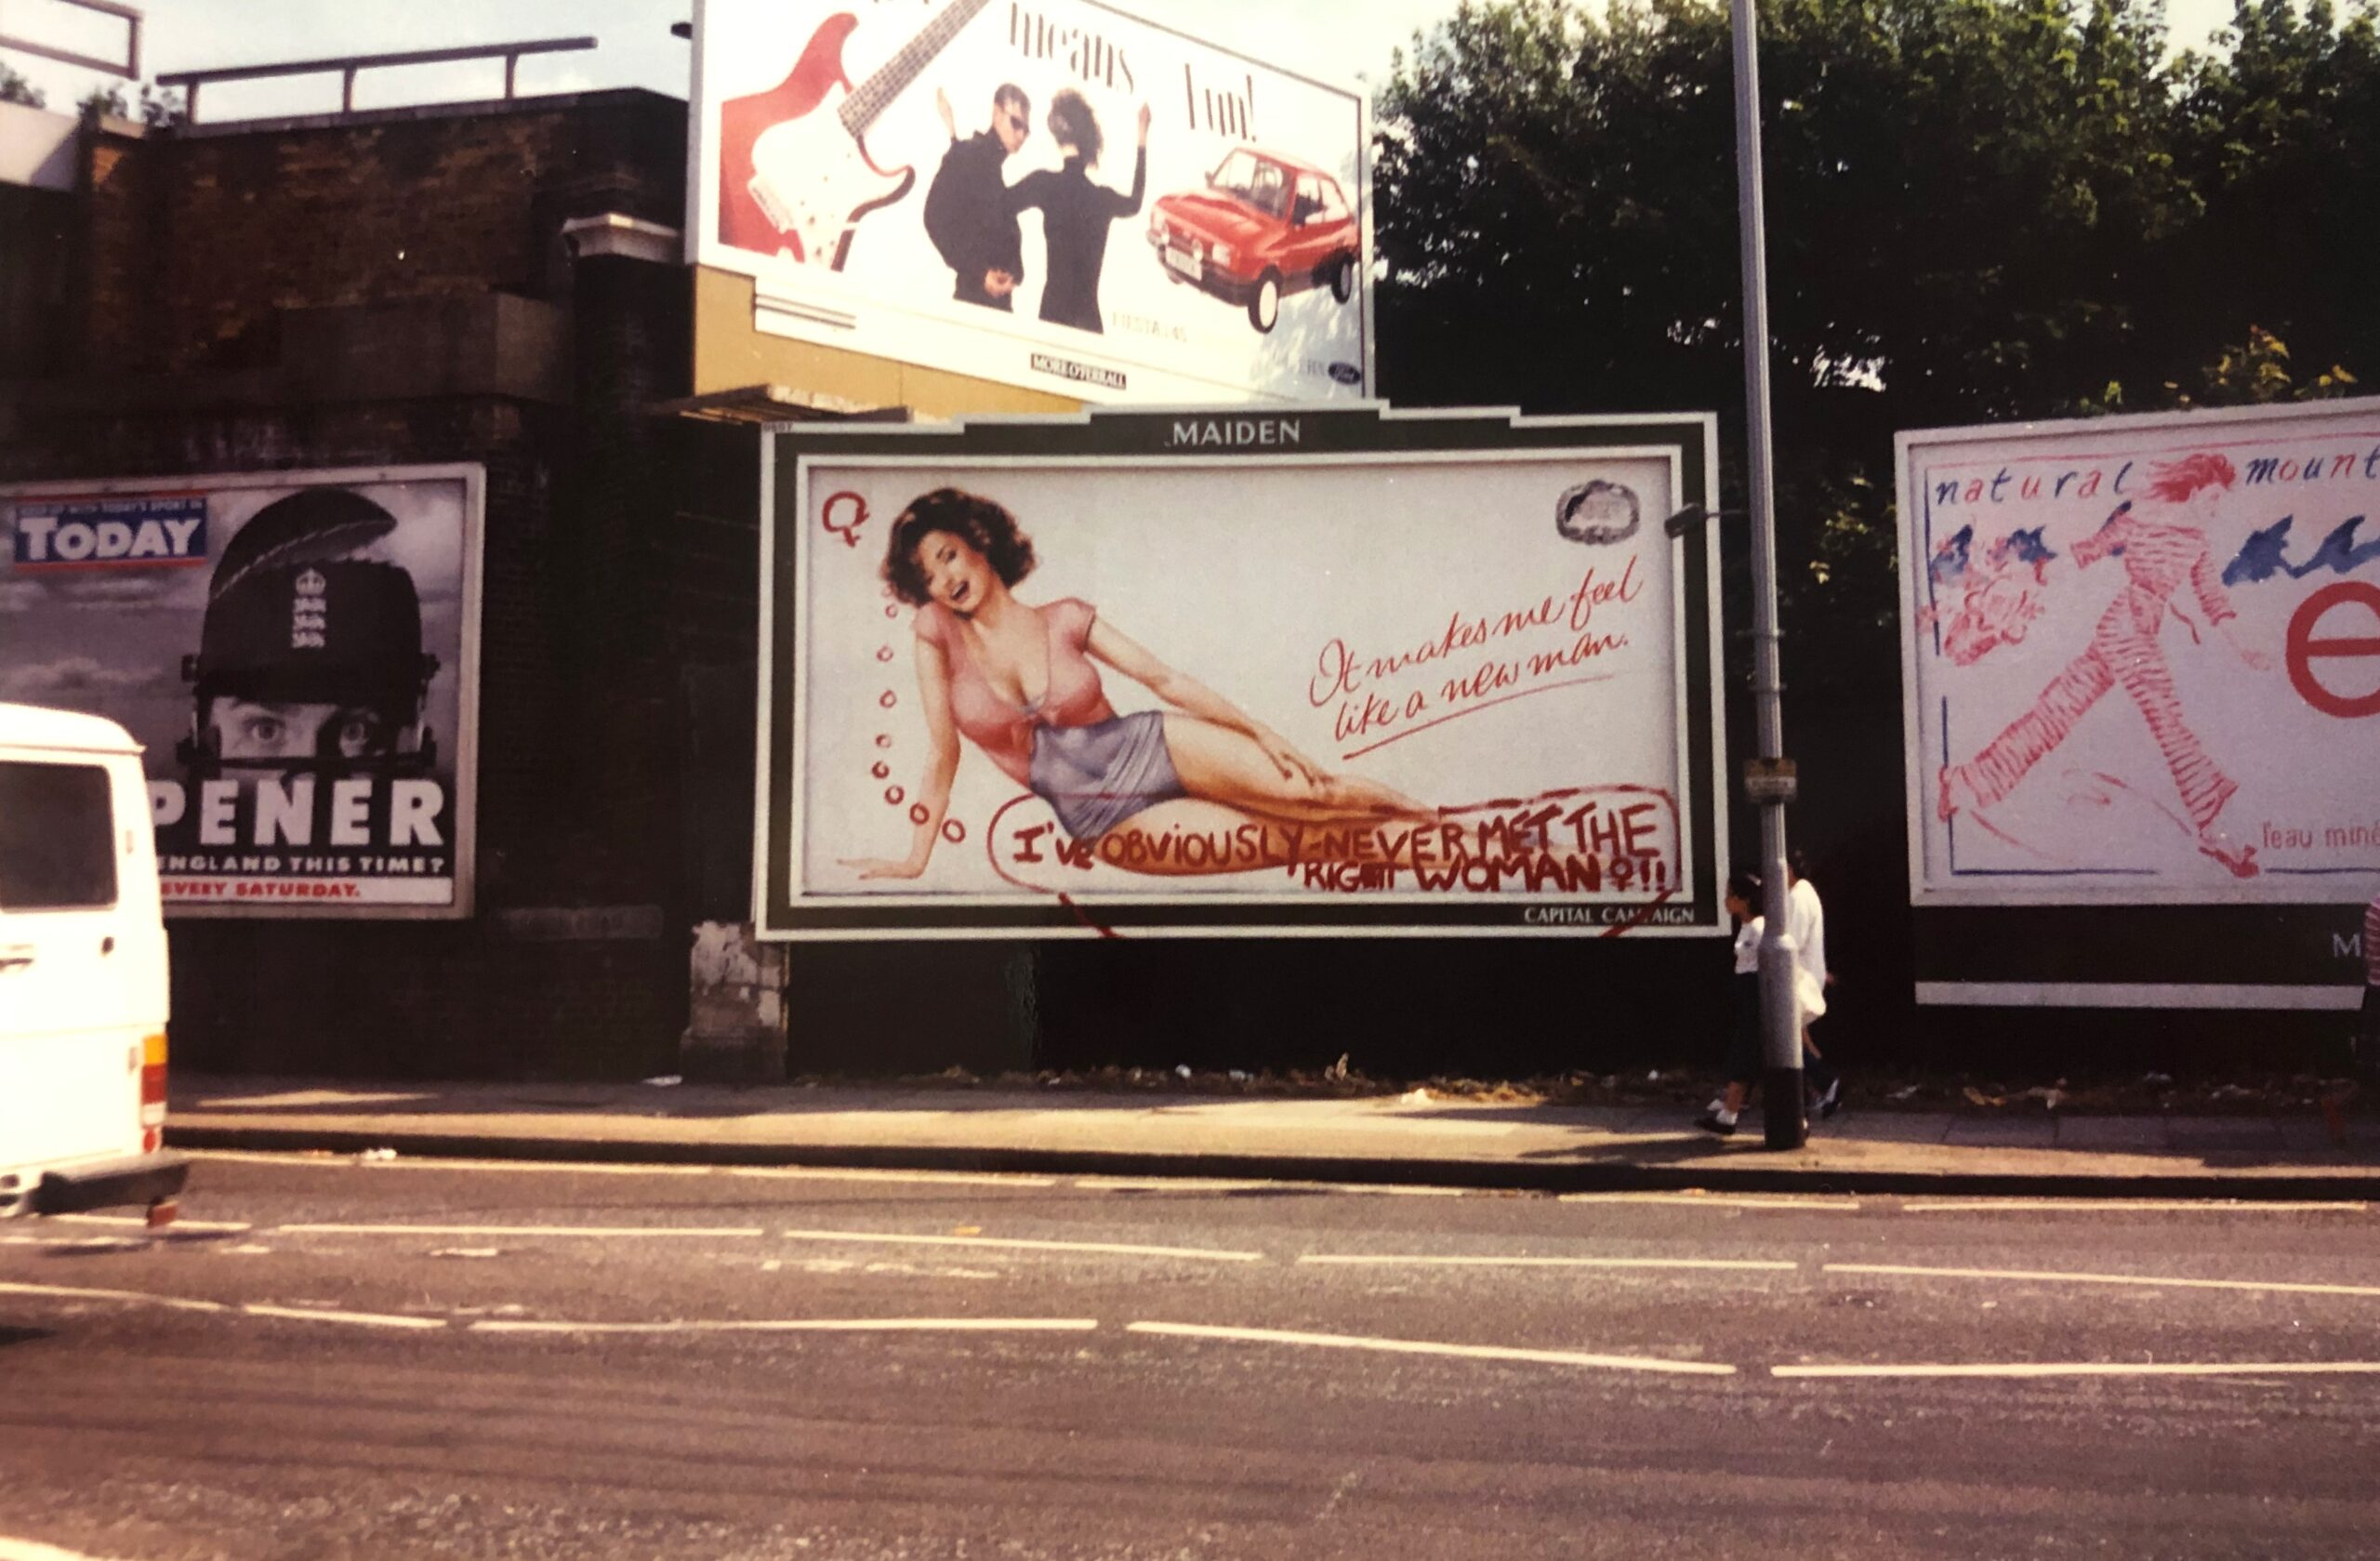 Billboard advert featuring a pin-up-style woman and the caption, 'It makes me feel like a new man!'. Below this, in red paint, a thought bubble: 'I've obviously never met the right woman!!'